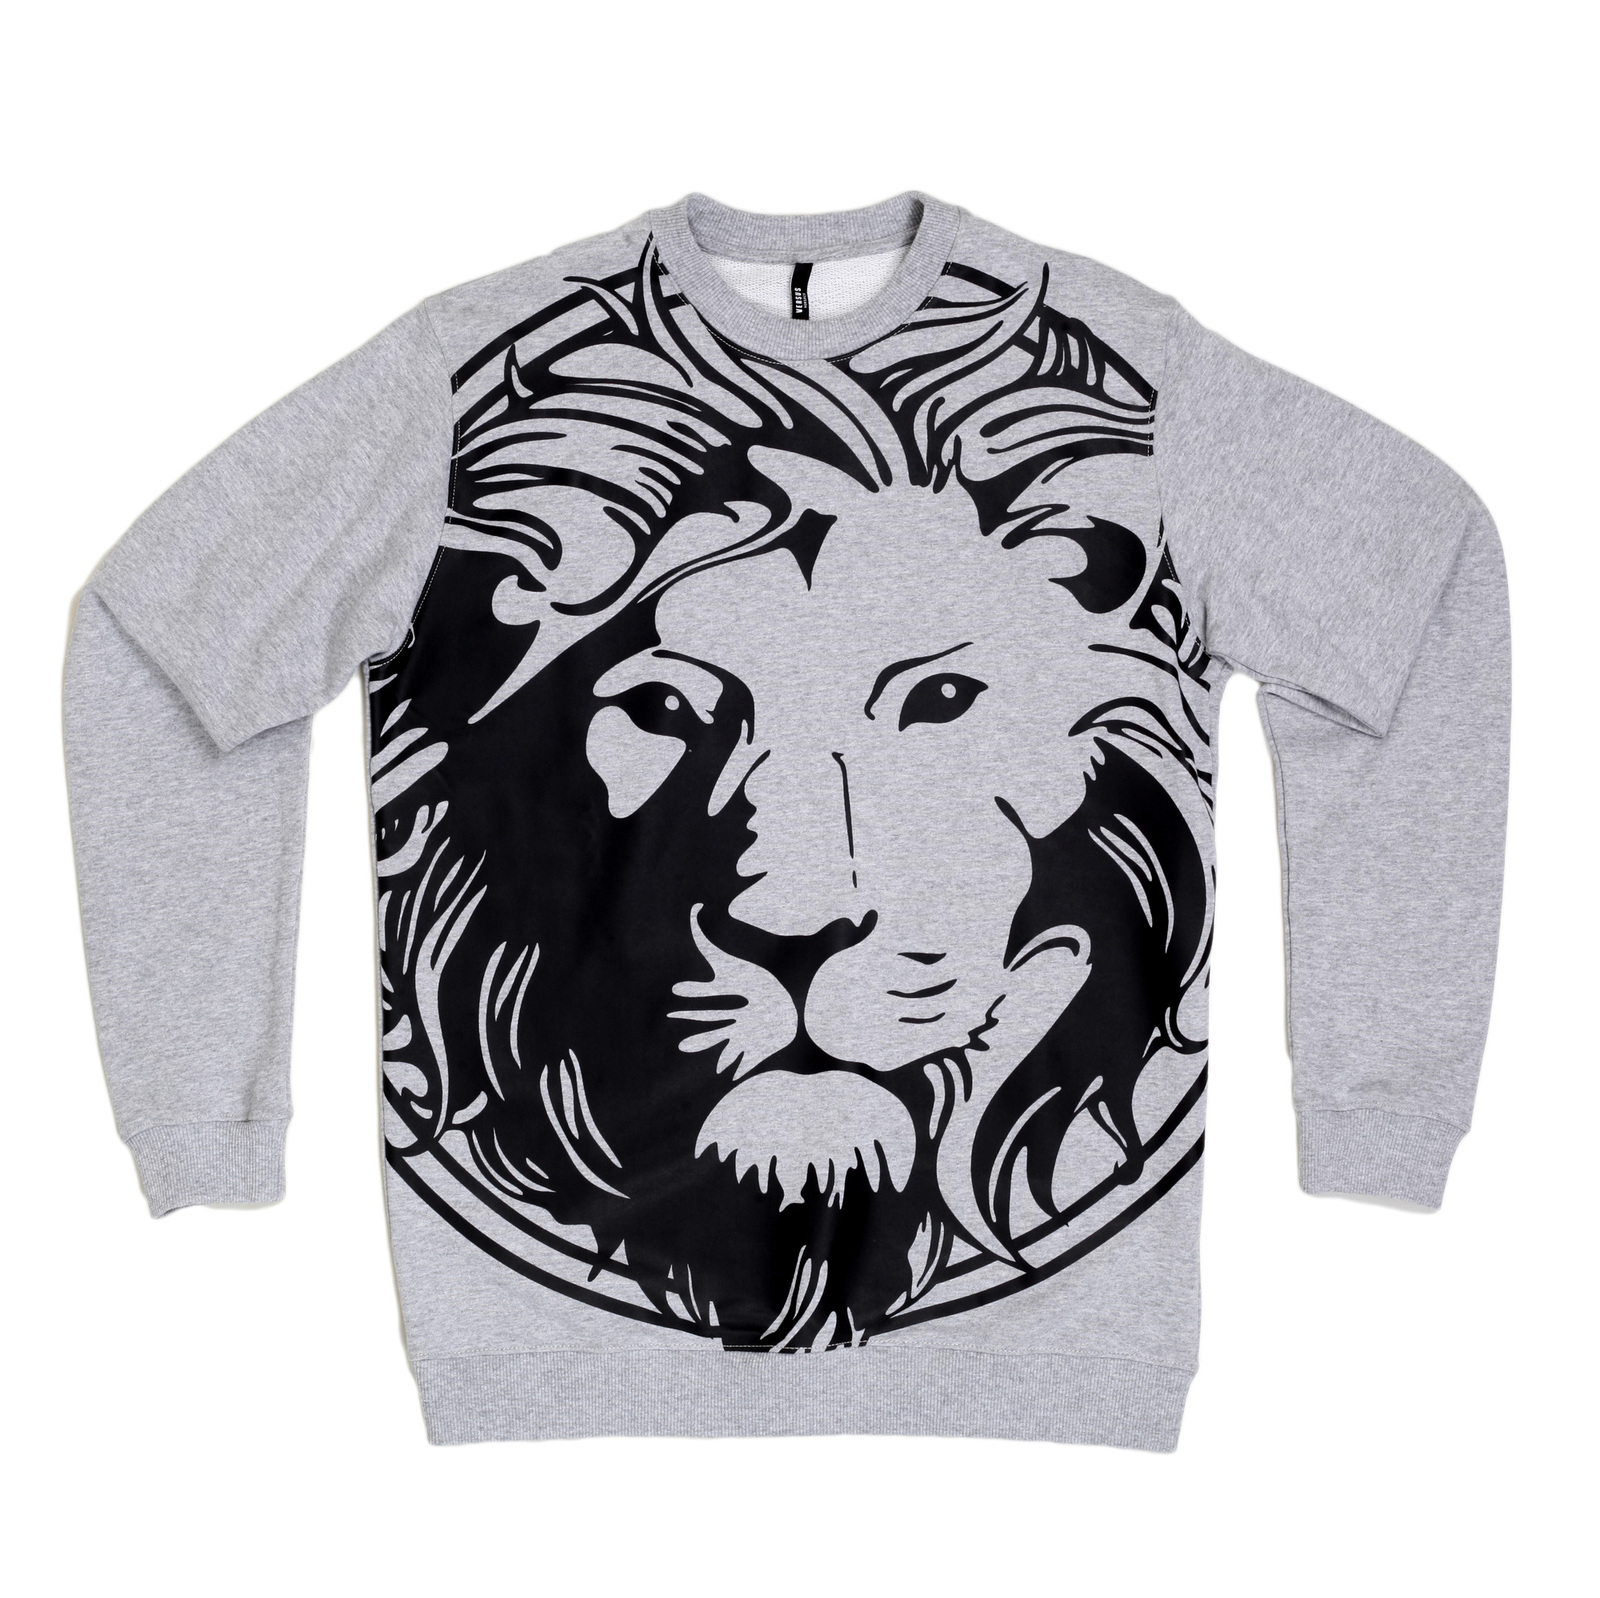 5aa1a0a2aca5ea Marl Grey Mens Sweatshirts with Rubber Print by Versace